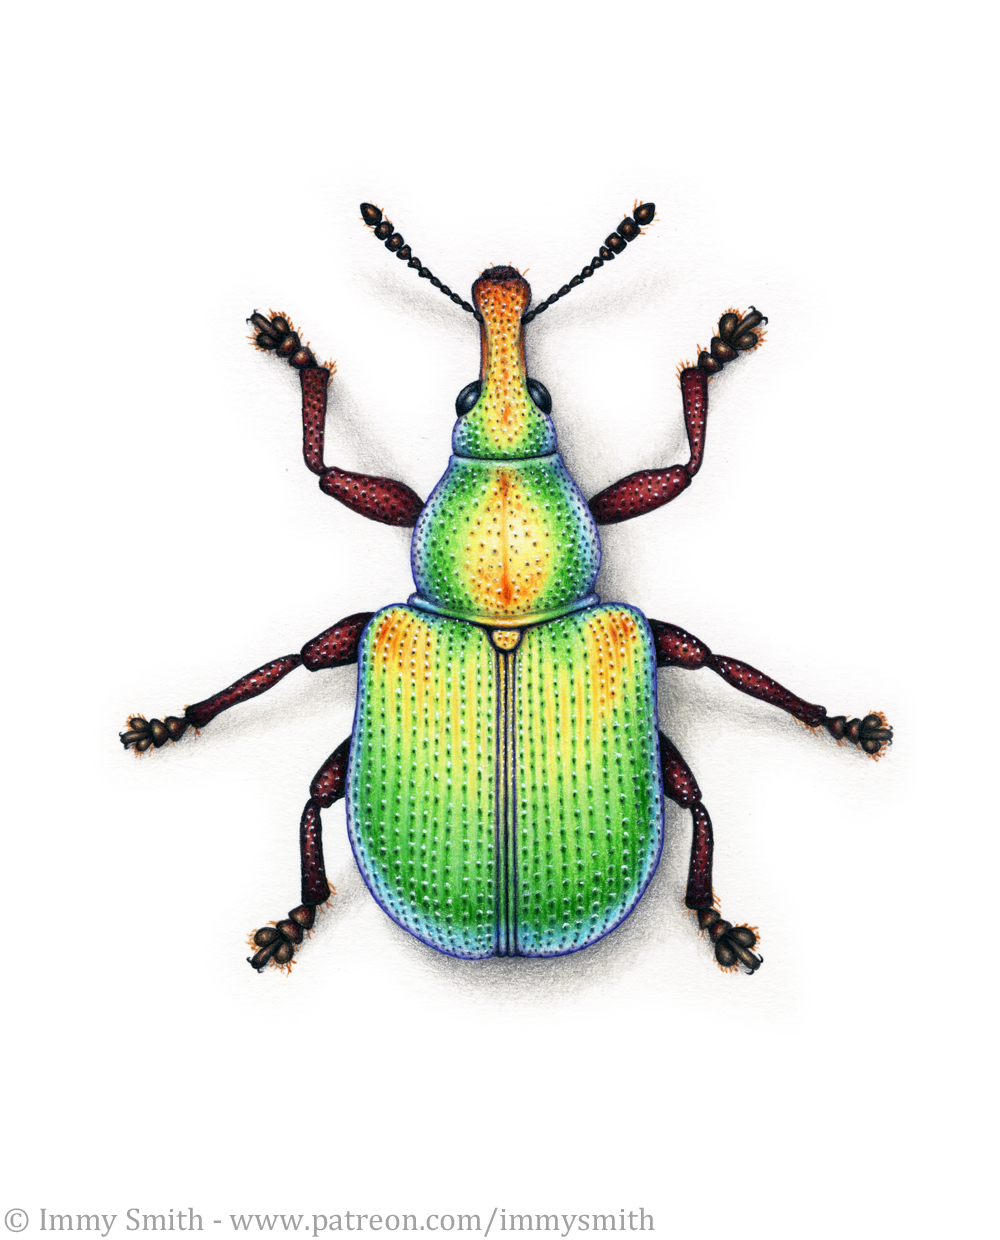 Image description; a colour pencil drawing of a rainbow vine weevil